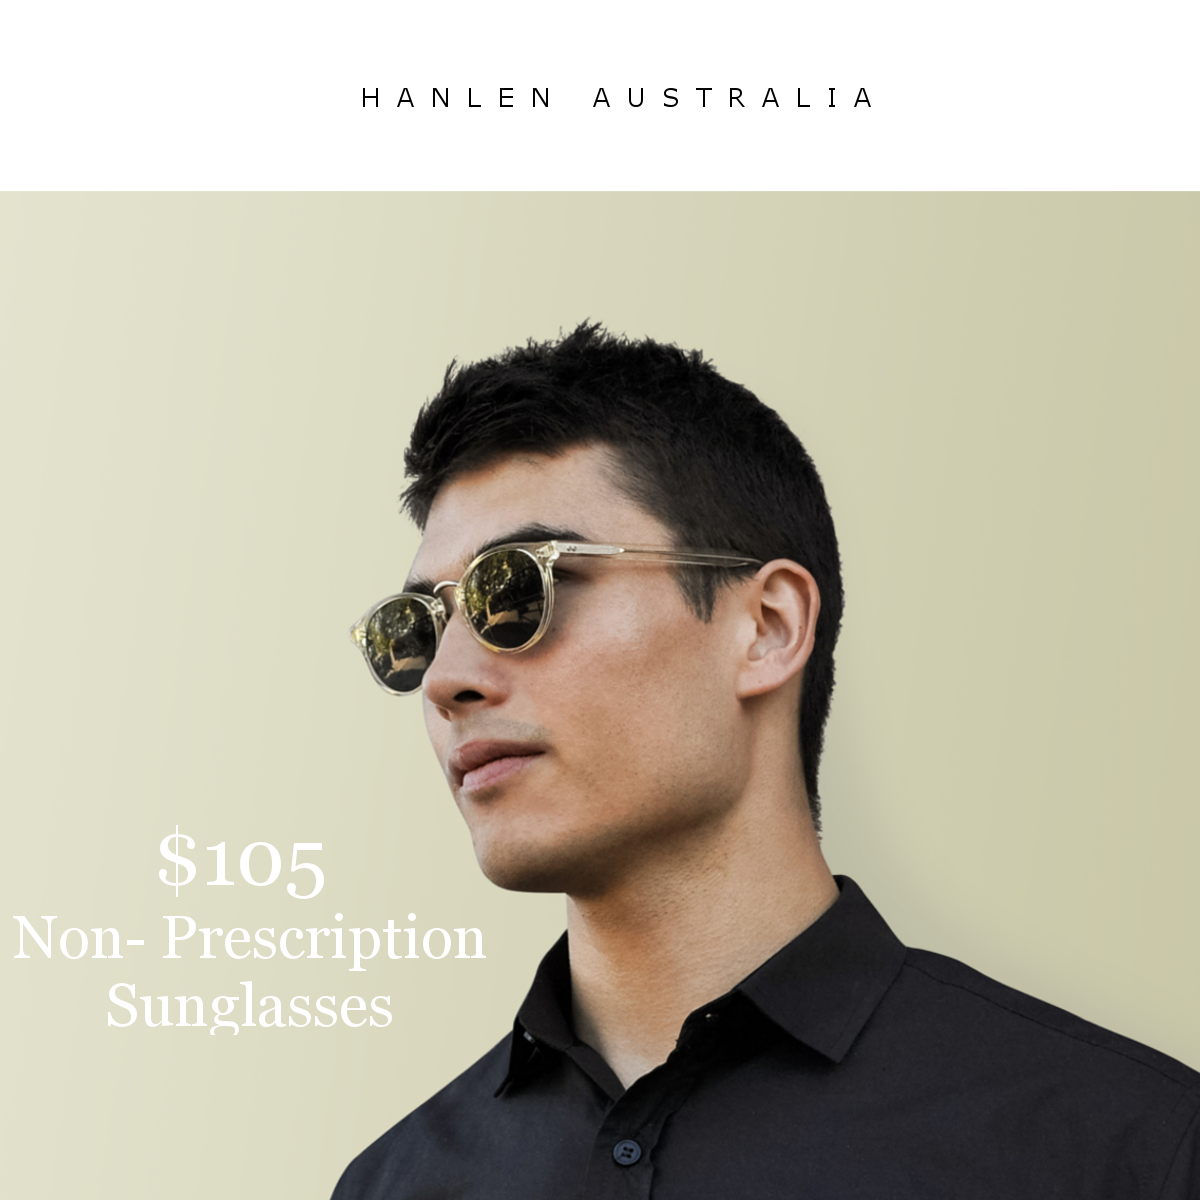 Come explore our range of amazing sunglasses online or shop instore, we are based in Richmond in Melbourne! Call us today 03 9425 9854 for an eye test!